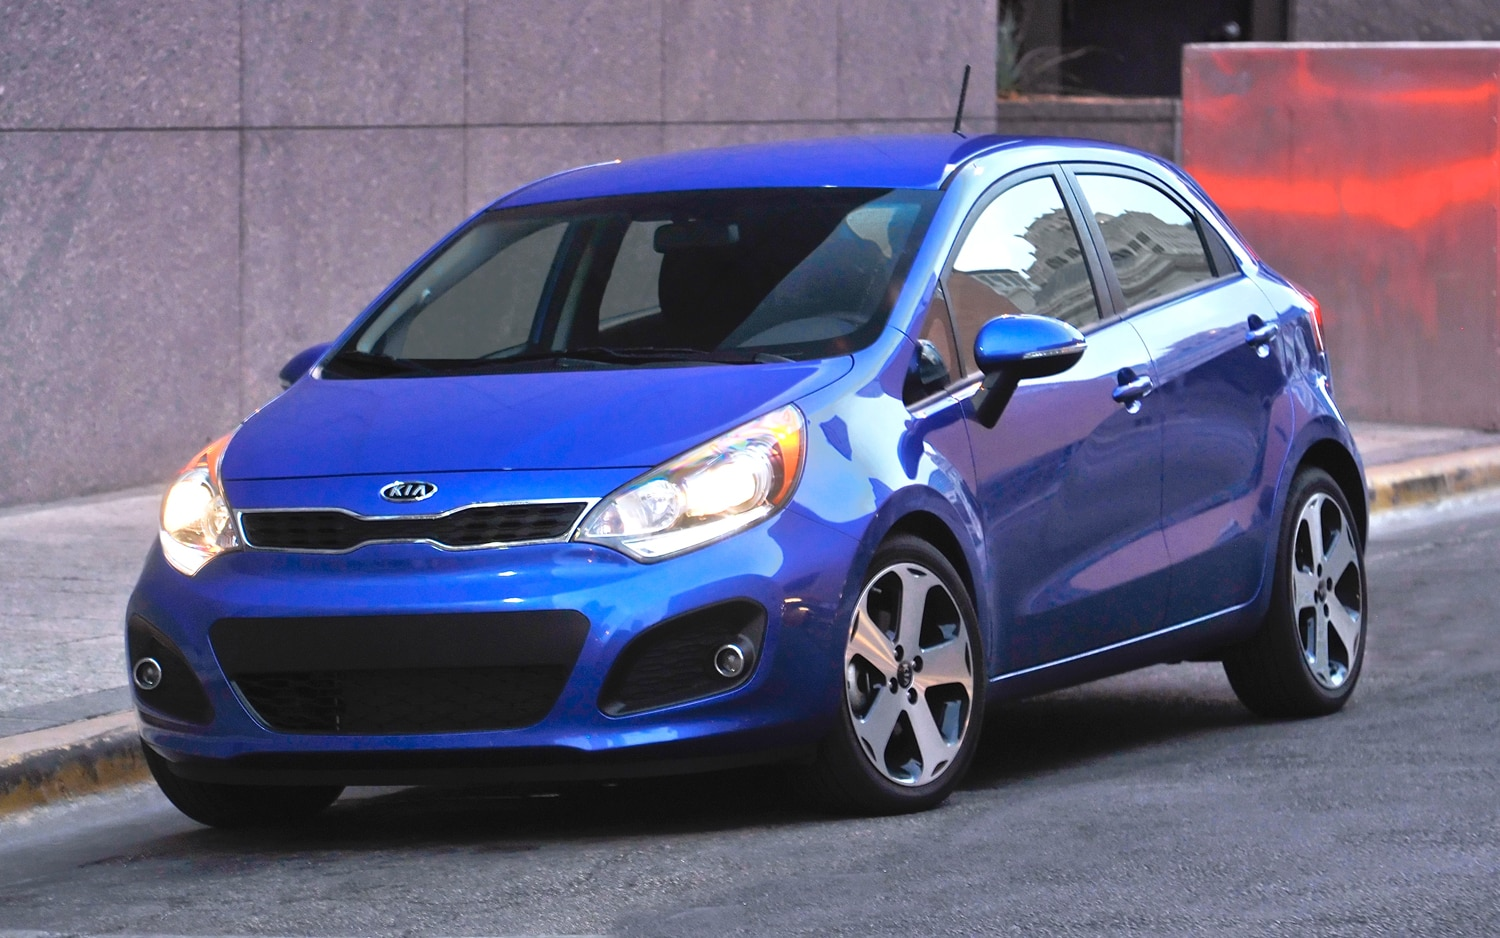 2012 Kia Rio Hatchback Front Three Quarter1